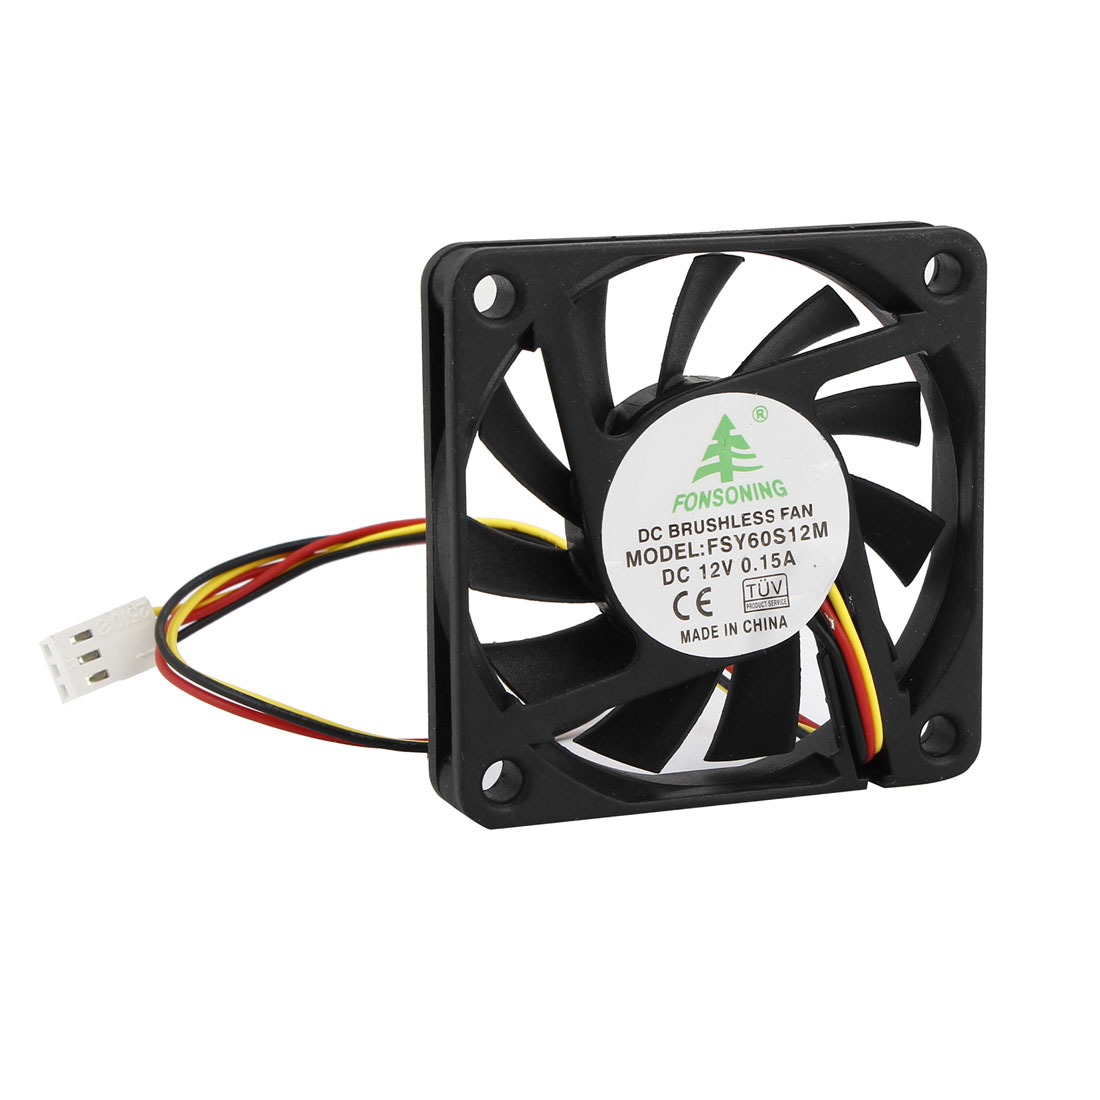 DC 12V 0.15A 60mmx10mm 2 Wires Lead Plastic 11 Flabellums Cooling Fan Black for PC Computer Cases CPU Cooler Radiator